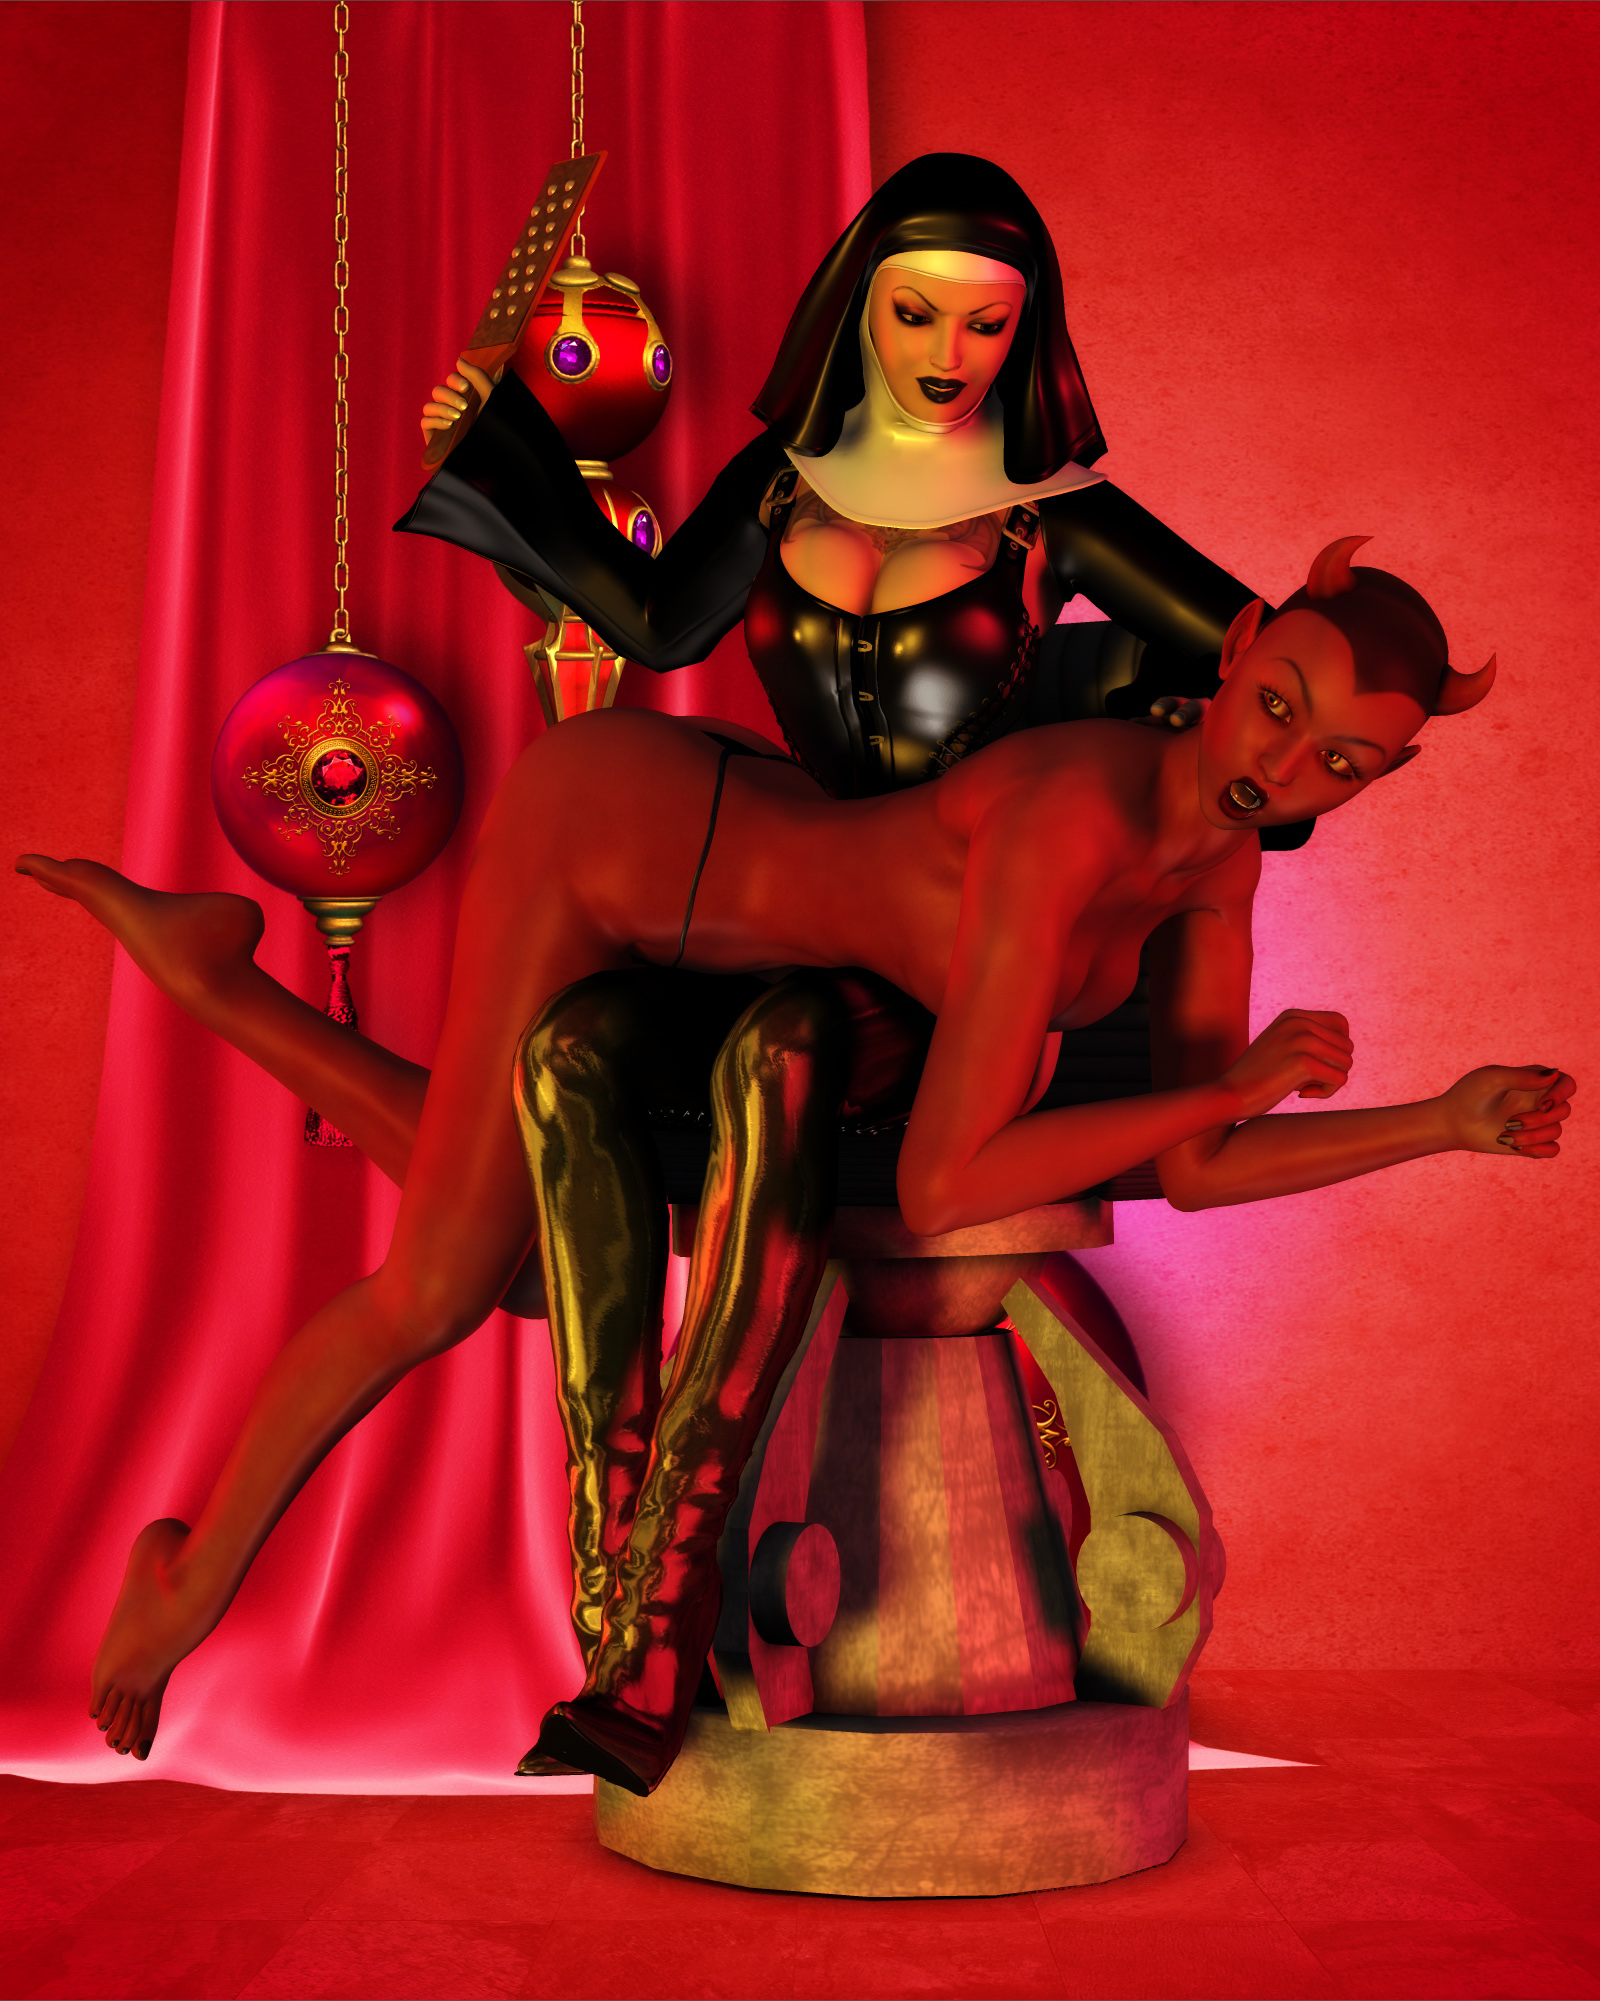 Demon sexing nun exploited movie